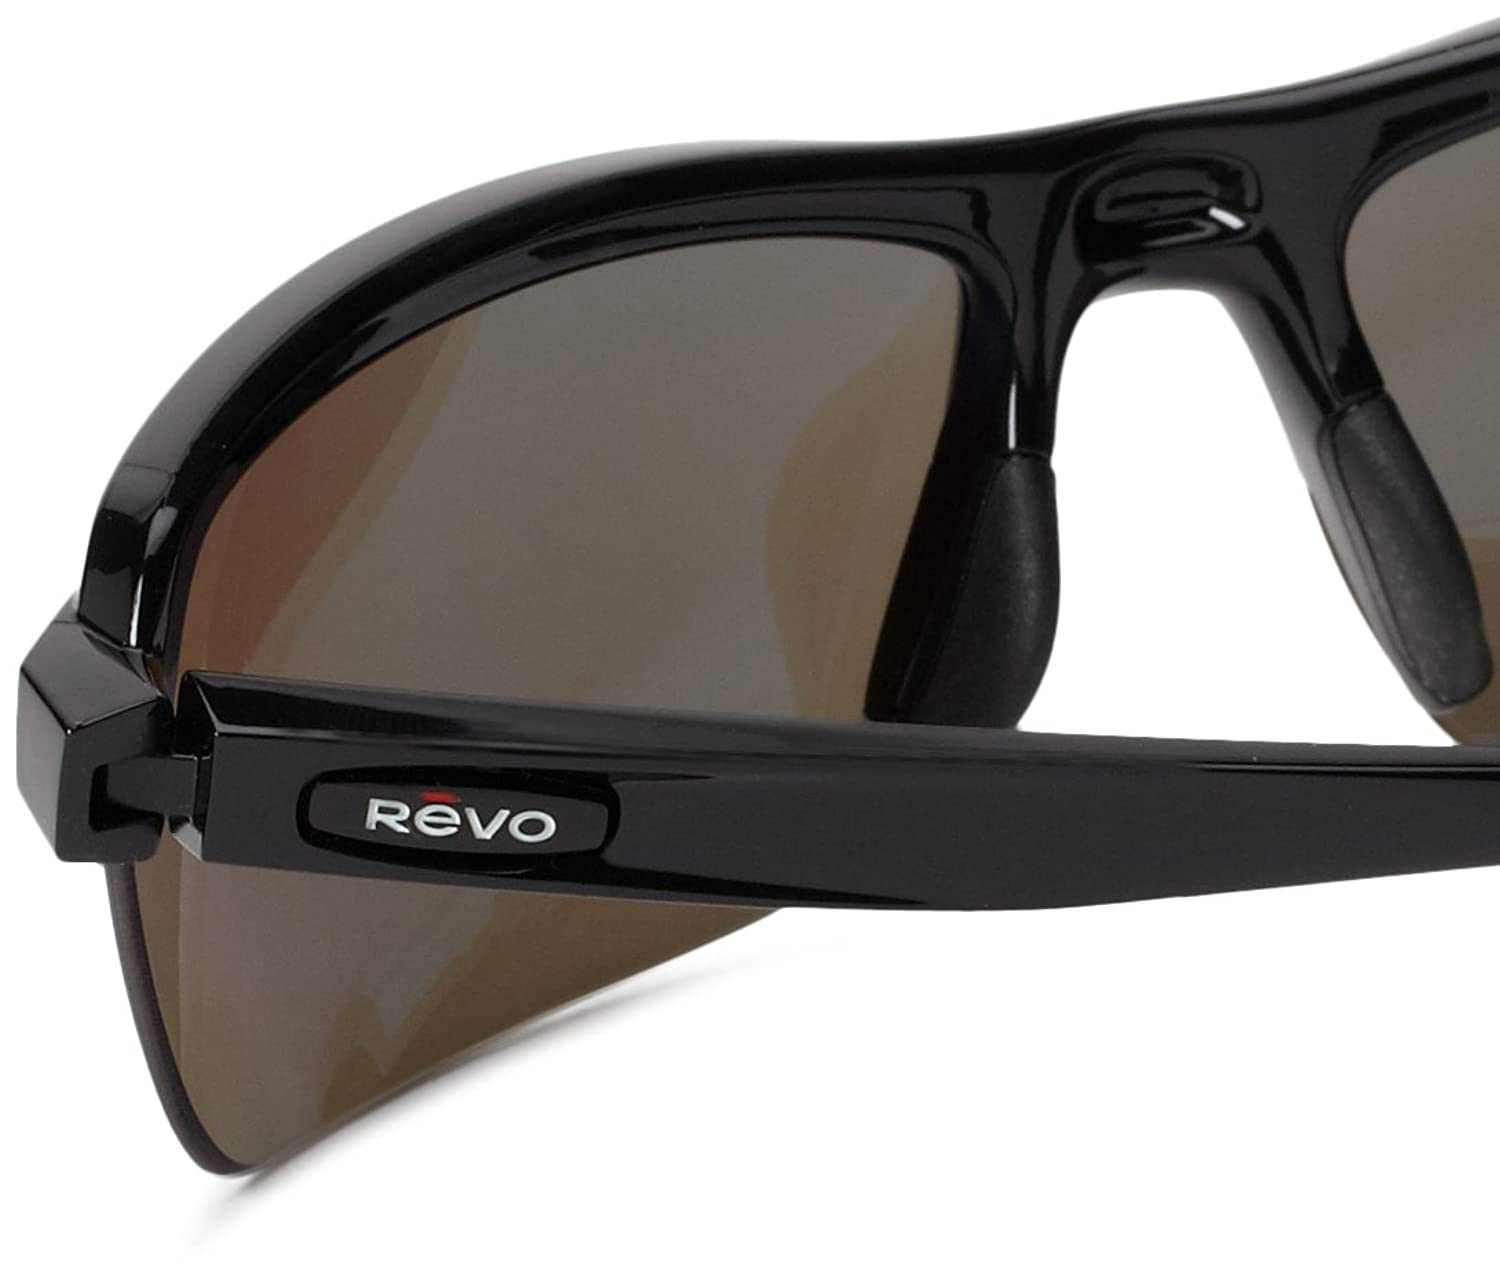 ae02d14a43d1 Amazon.com  Revo Mens Crux N RE4066-02 Polarized Iridium Sport  Sunglasses